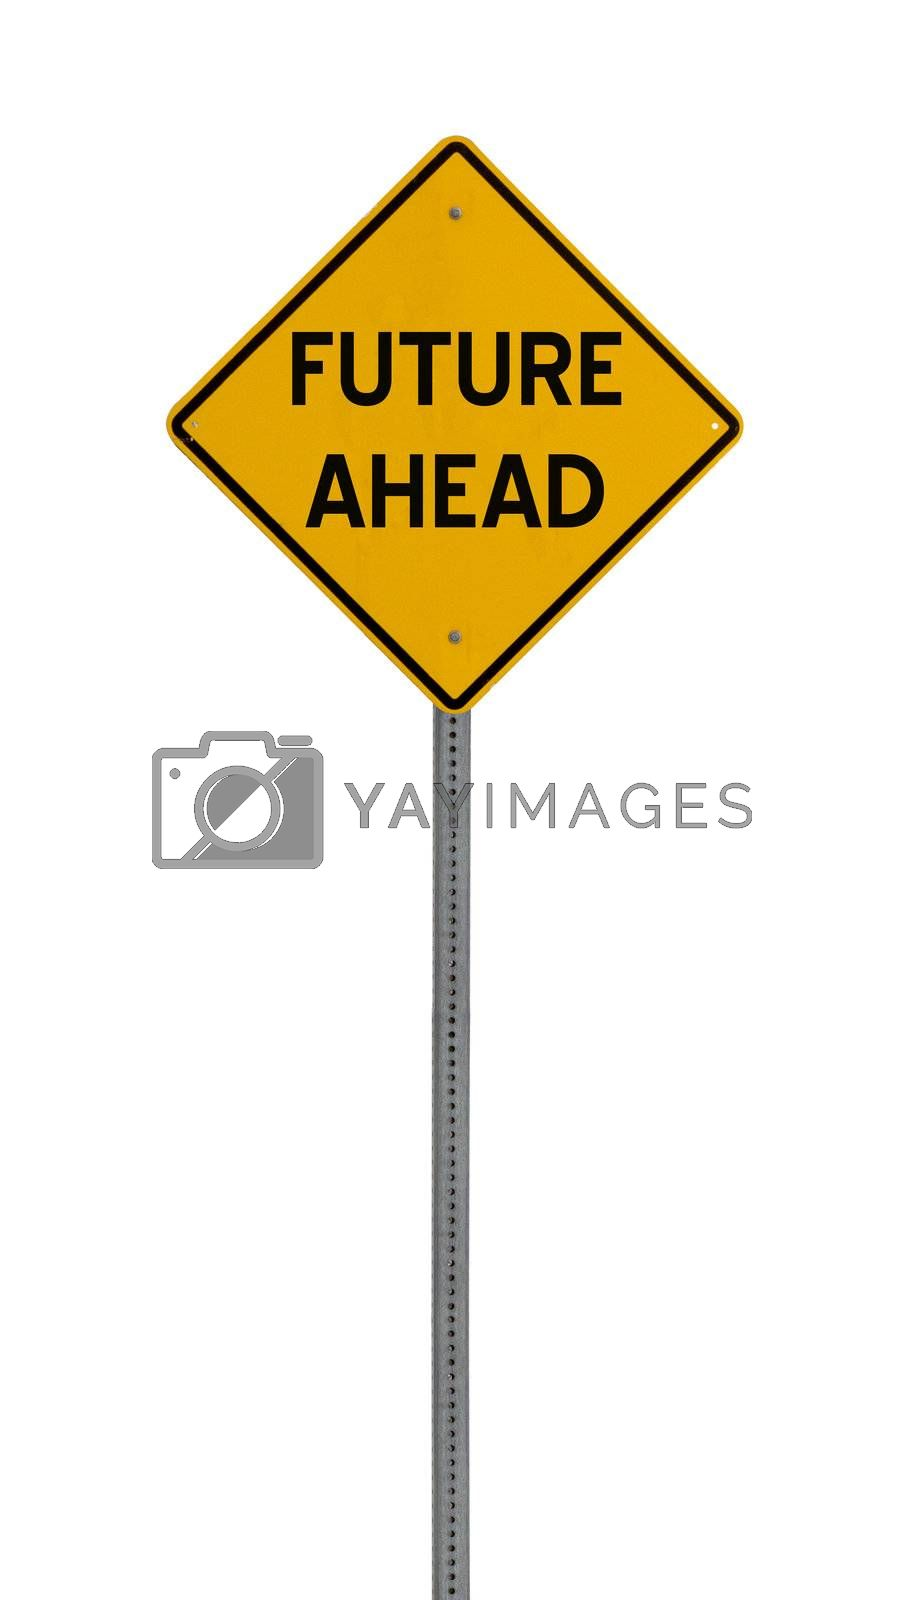 a yellow road sign with a white background for you to use in your design or presentaion.